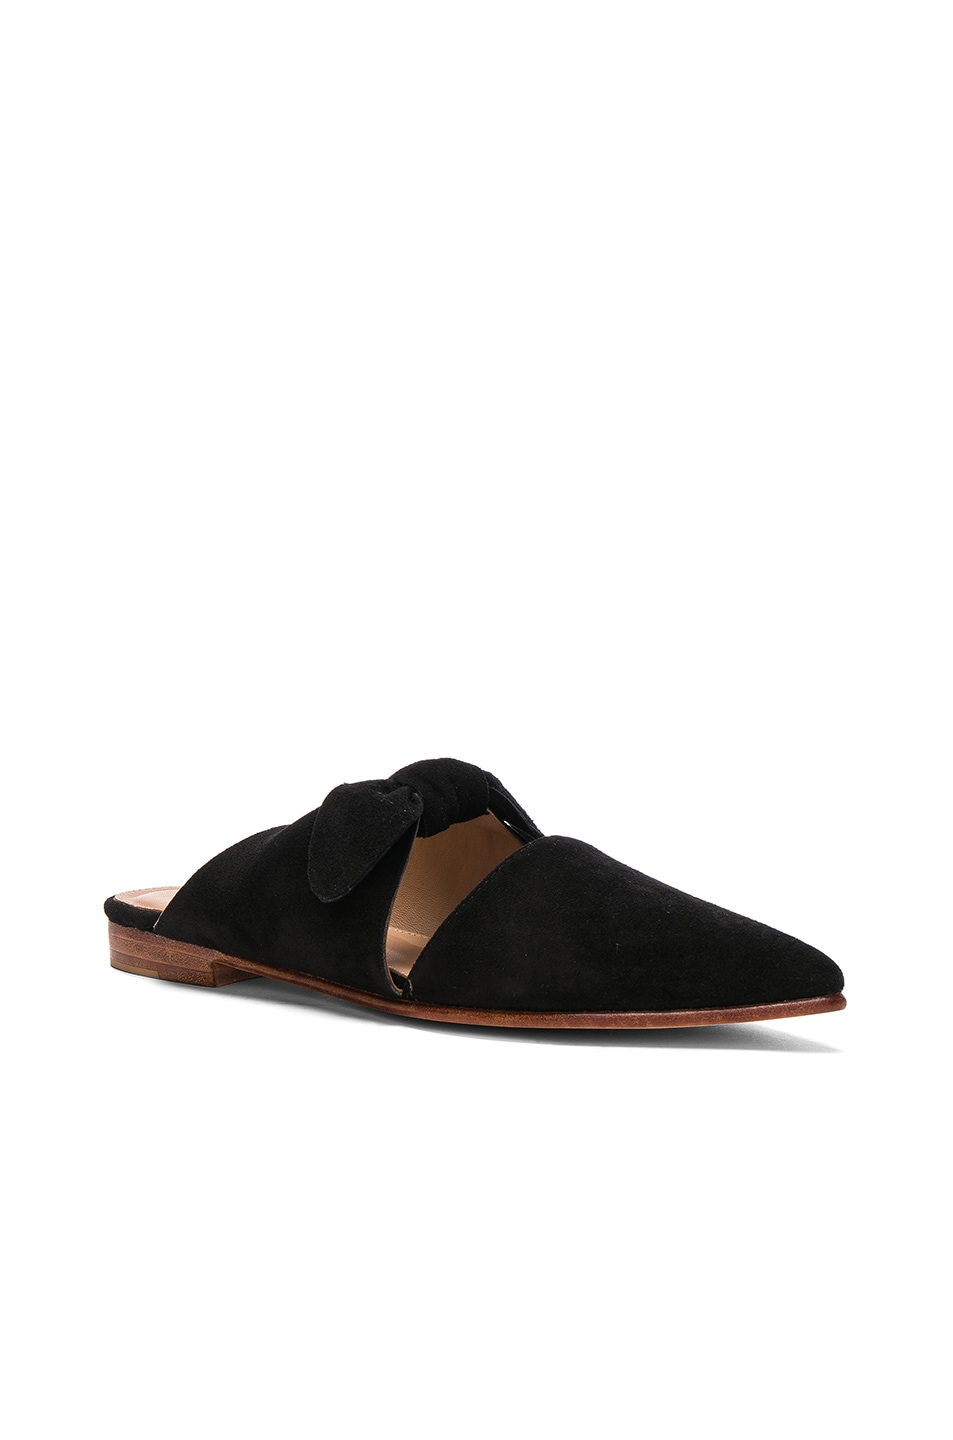 Image 2 of Ulla Johnson Suede Lilo Babouche Mules in Noir